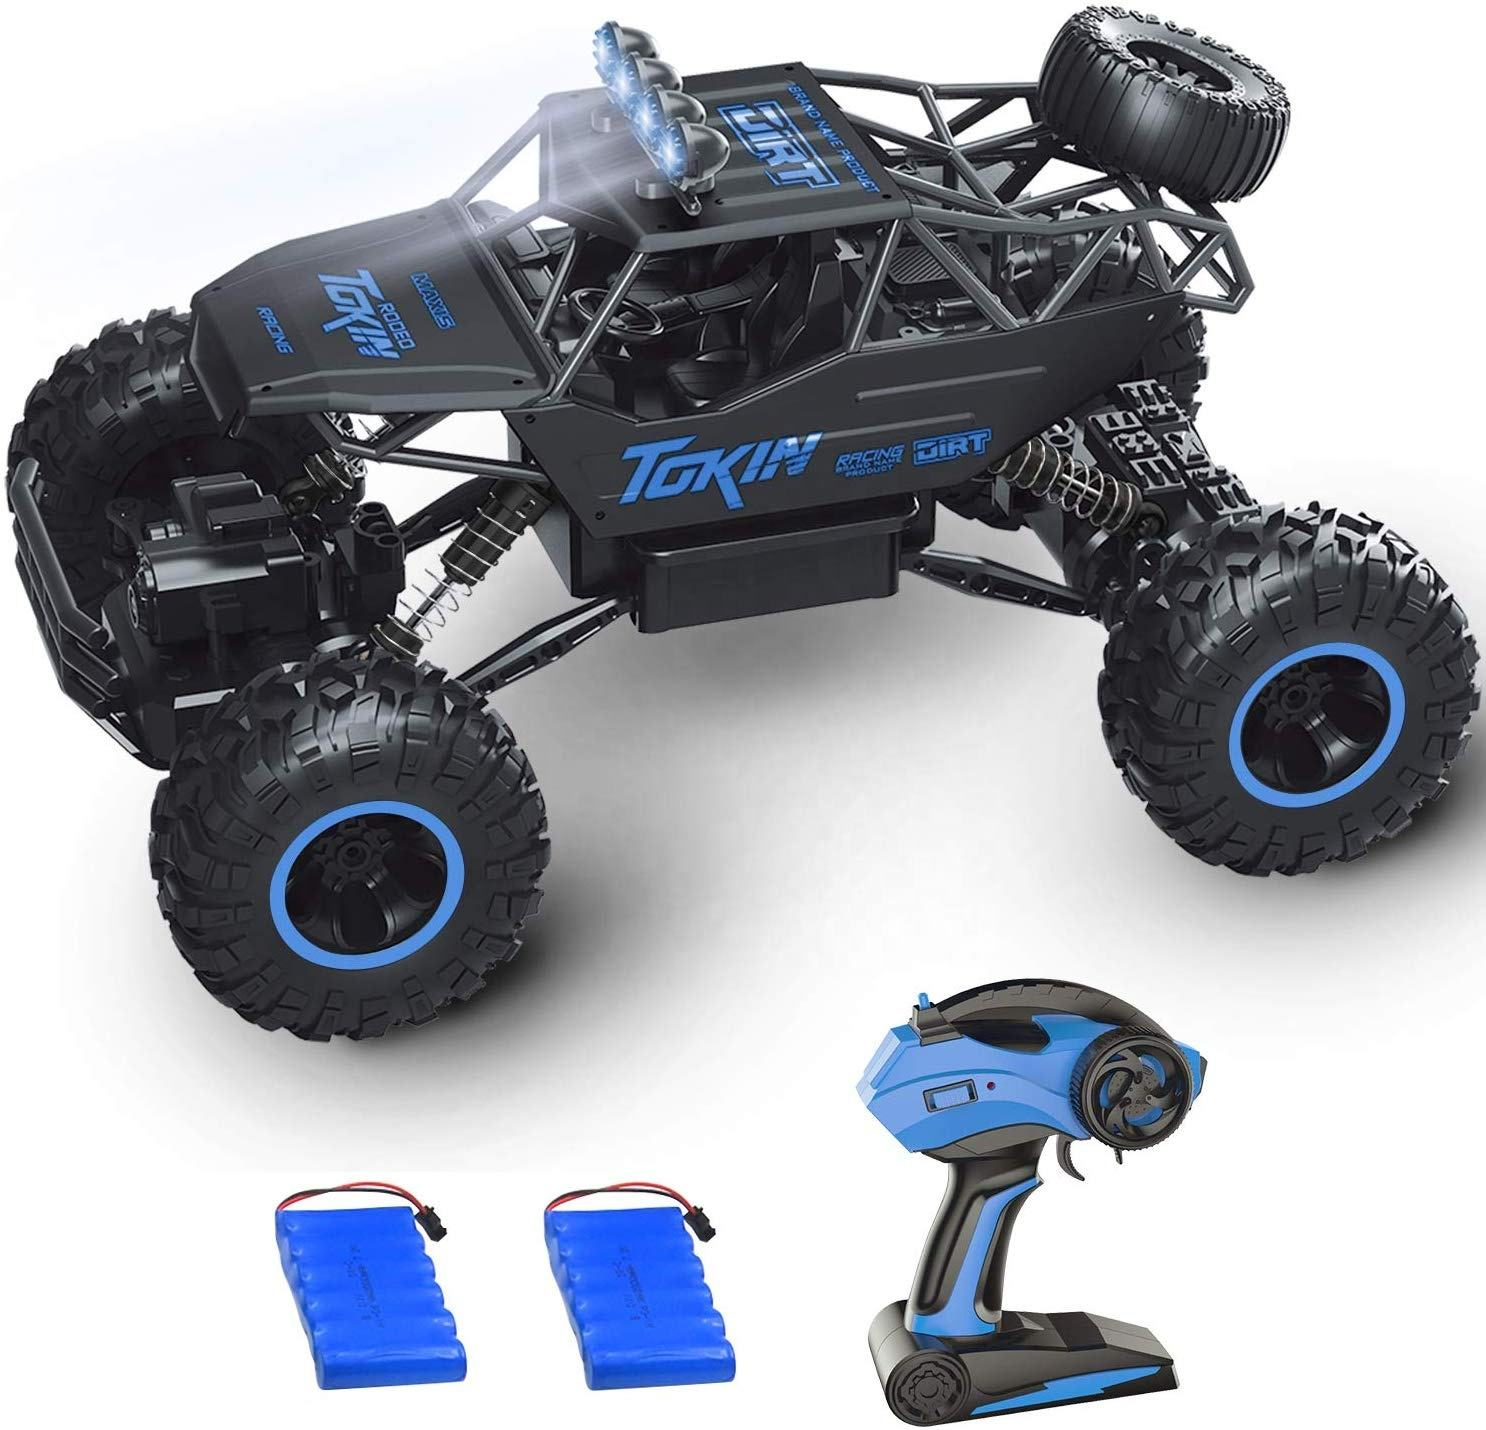 Flytec 8860 1/12 Scale High Speed Racing RC Cars 2.4GHZ 4WD OffオフロードVehicleとCar 2 Rechargeable BatteryためKidsとAdults